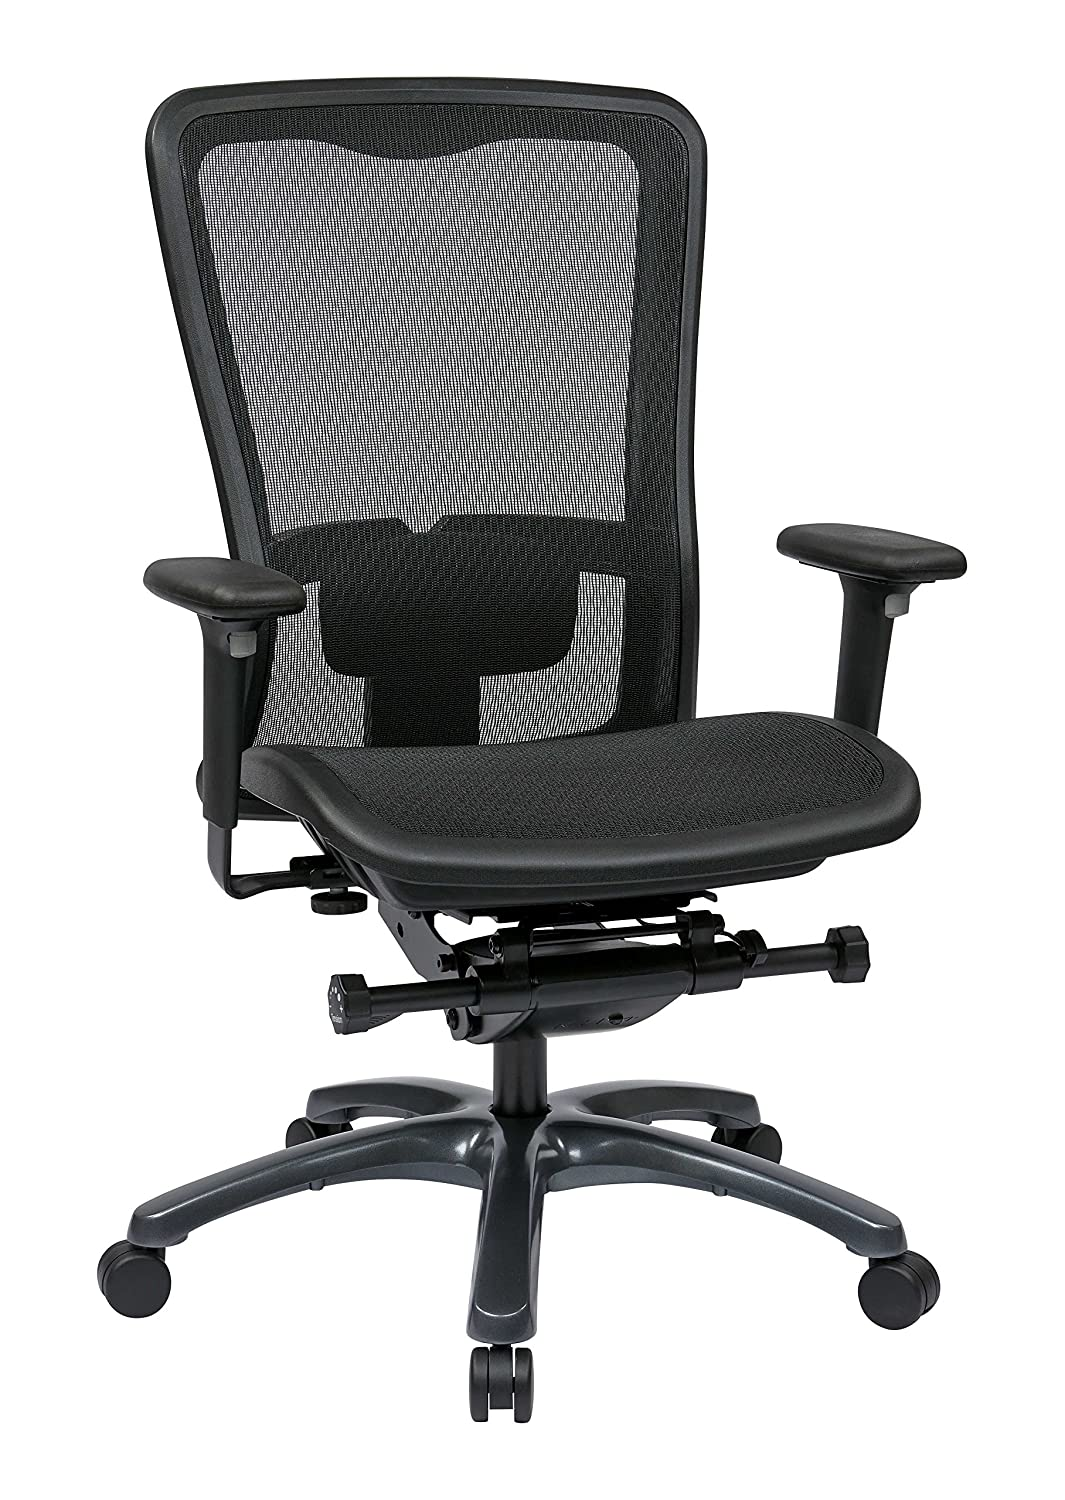 Amazon.com: Office Star High Back Breathable ProGrid Back And Seat  Adjustable Black Managers Chair, Gunmetal Finish: Kitchen U0026 Dining